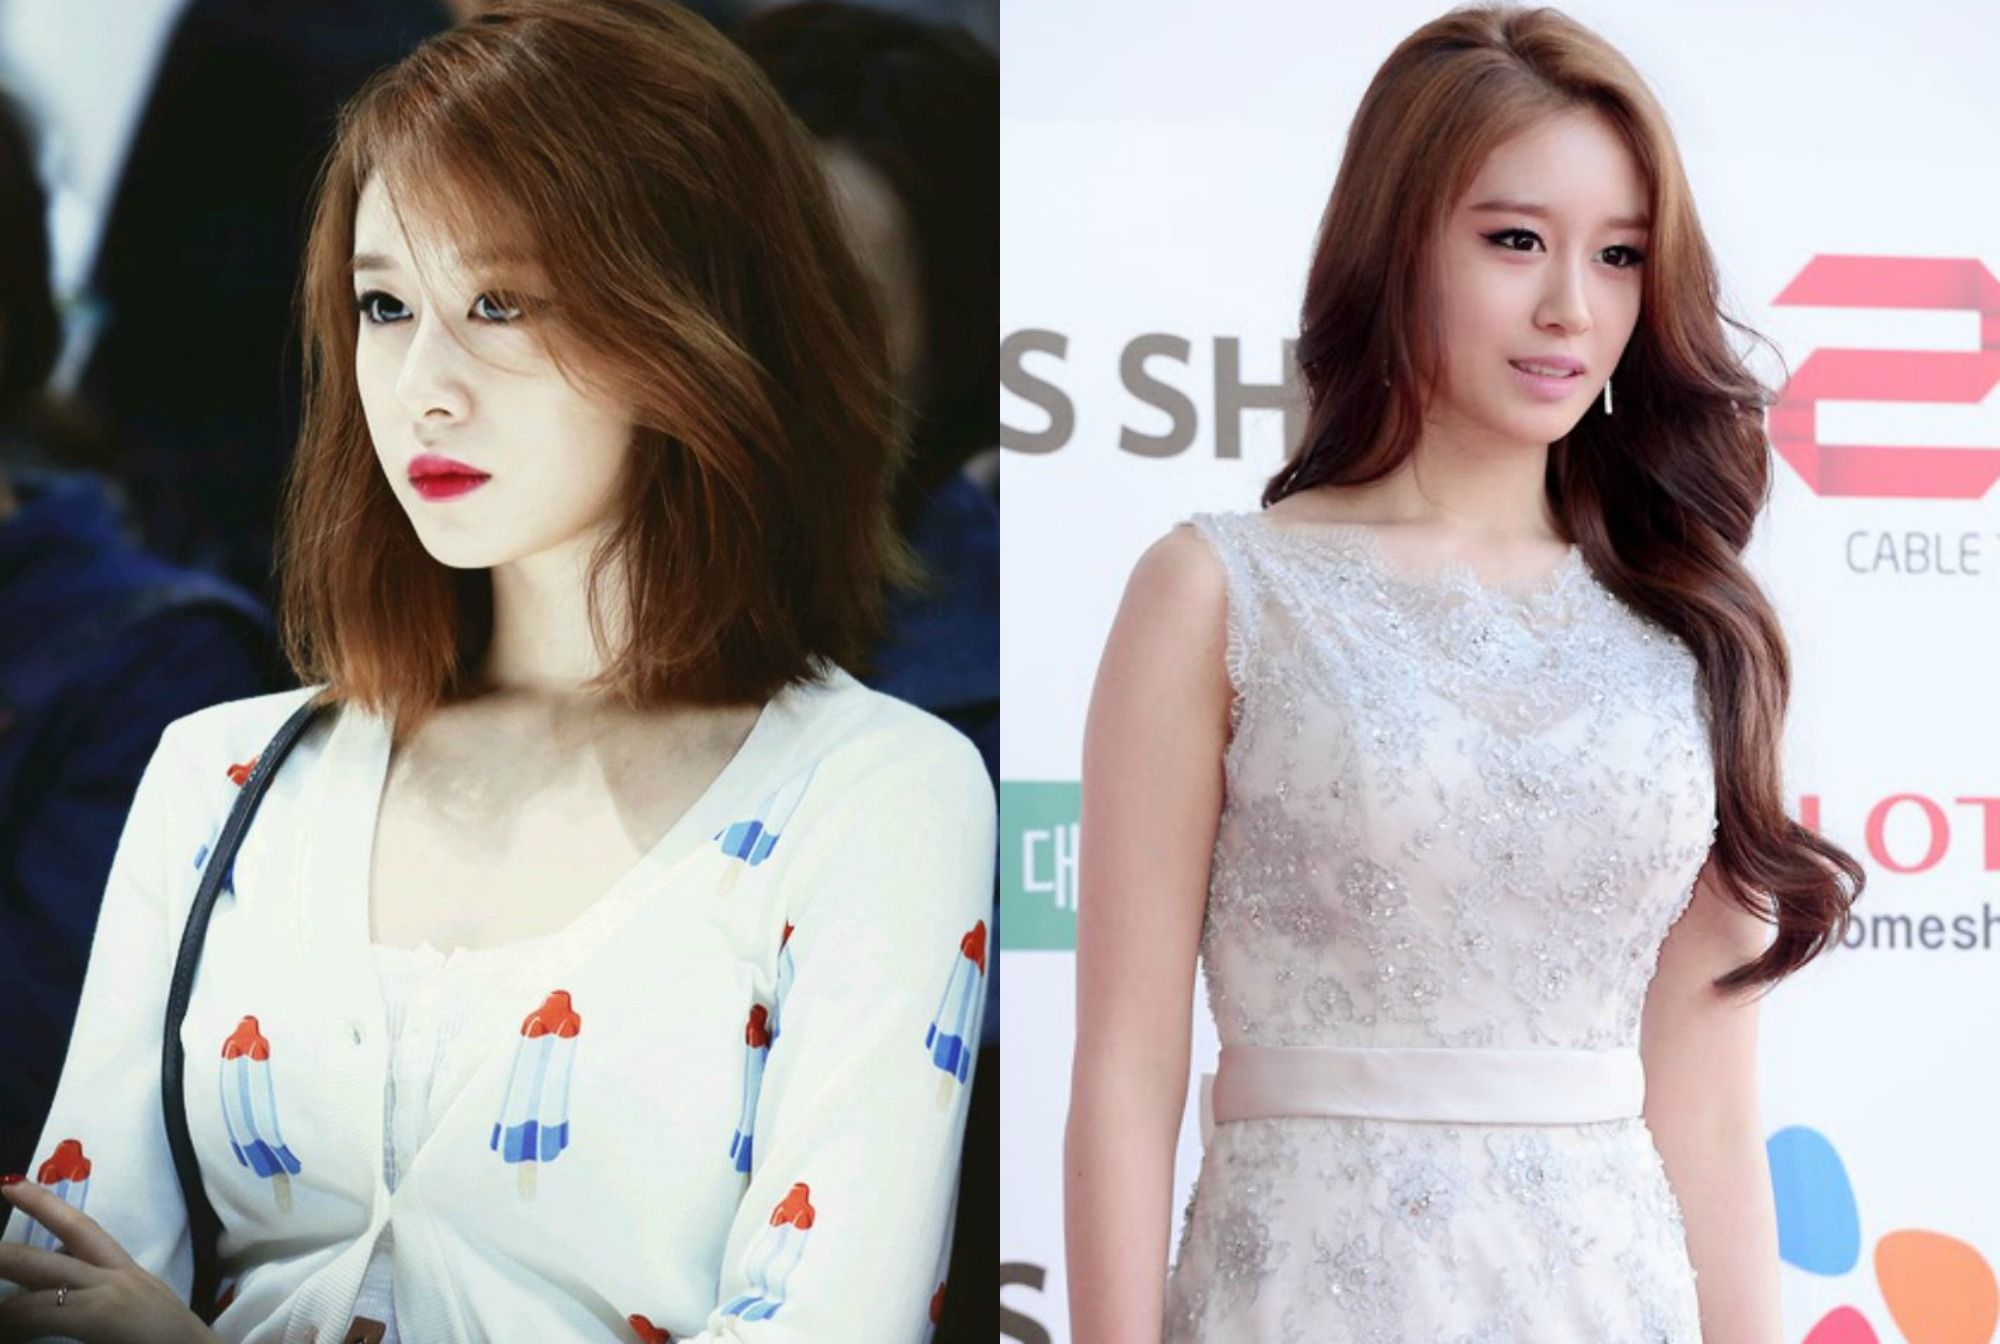 Kpop Girl Group T Ara Jiyeon Haircut Inspirations Kpop Idol Short Vs Long Hair Cute Hairstyles For Short Hair Long Vs Short Hair Haircut Inspiration